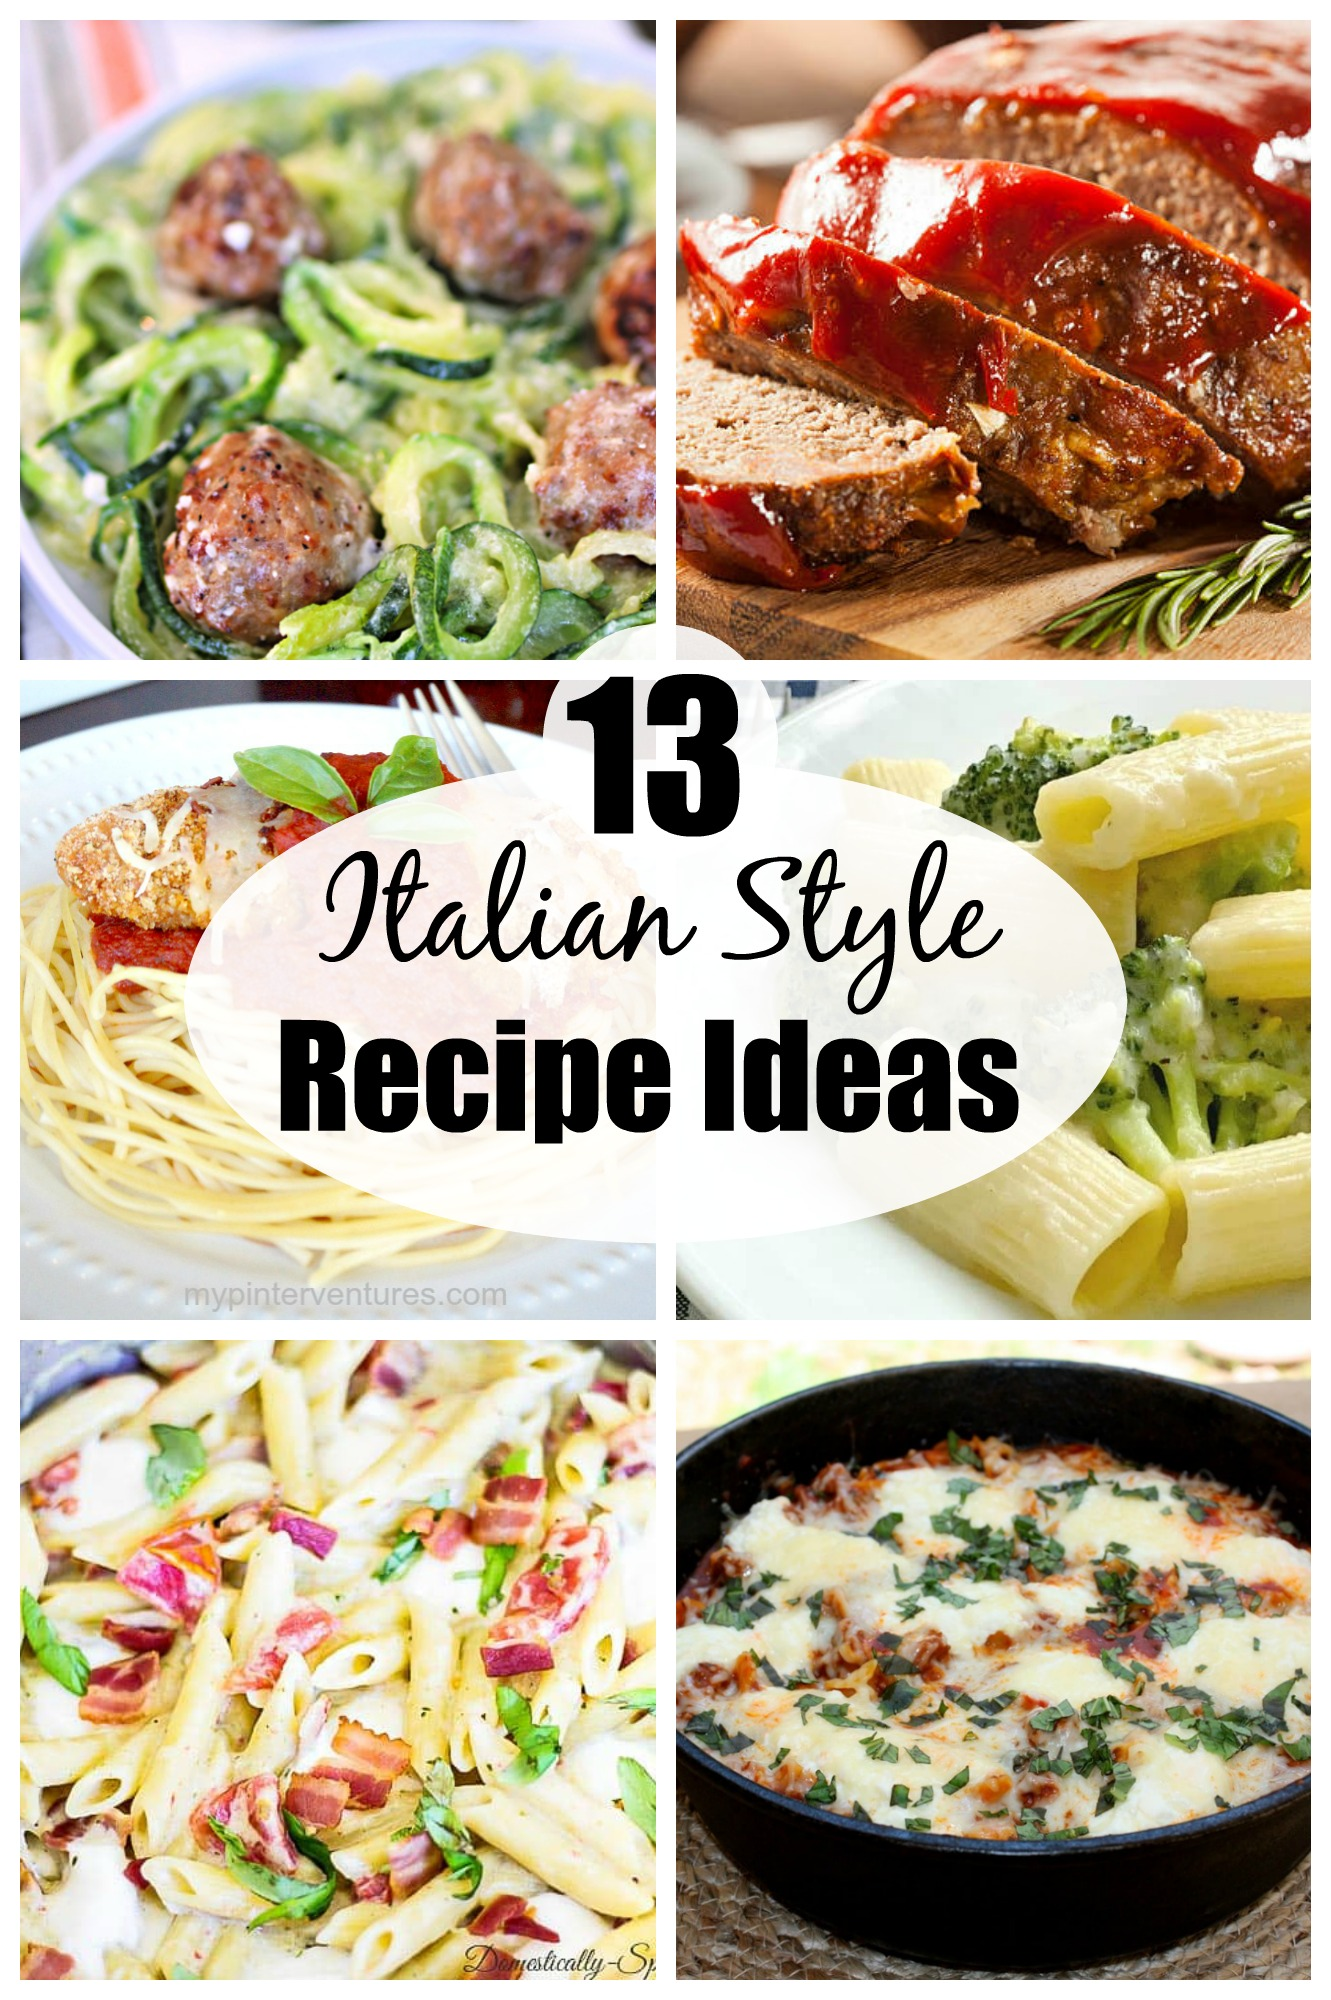 13 Italian Style Recipe Ideas - Looking for a dinner idea?  Check out these delicious Italian style recipes!  #italianrecipe #italianstylefood  via @spaula